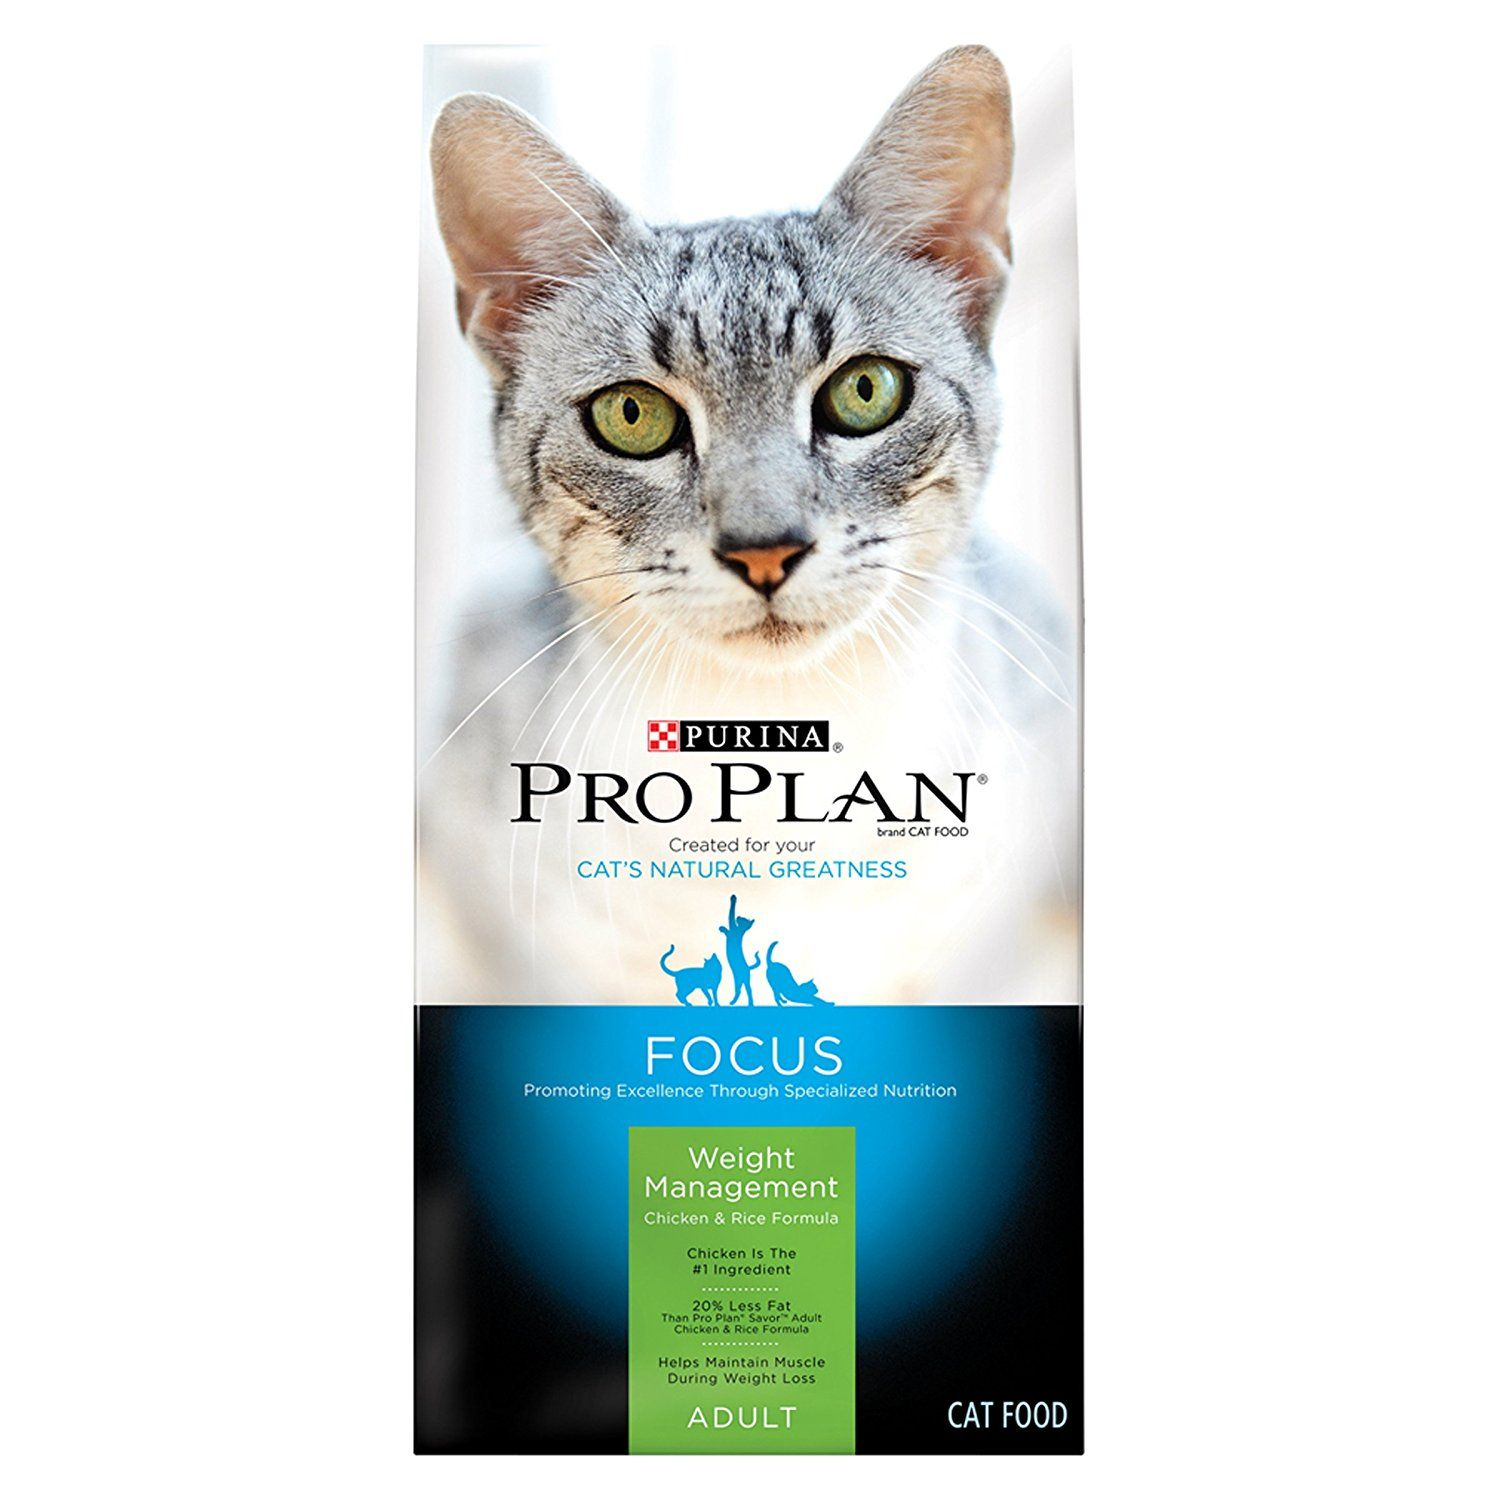 Pro plan focus weight management chicken and rice cat food more cat pro plan focus weight management chicken and rice cat food forumfinder Image collections